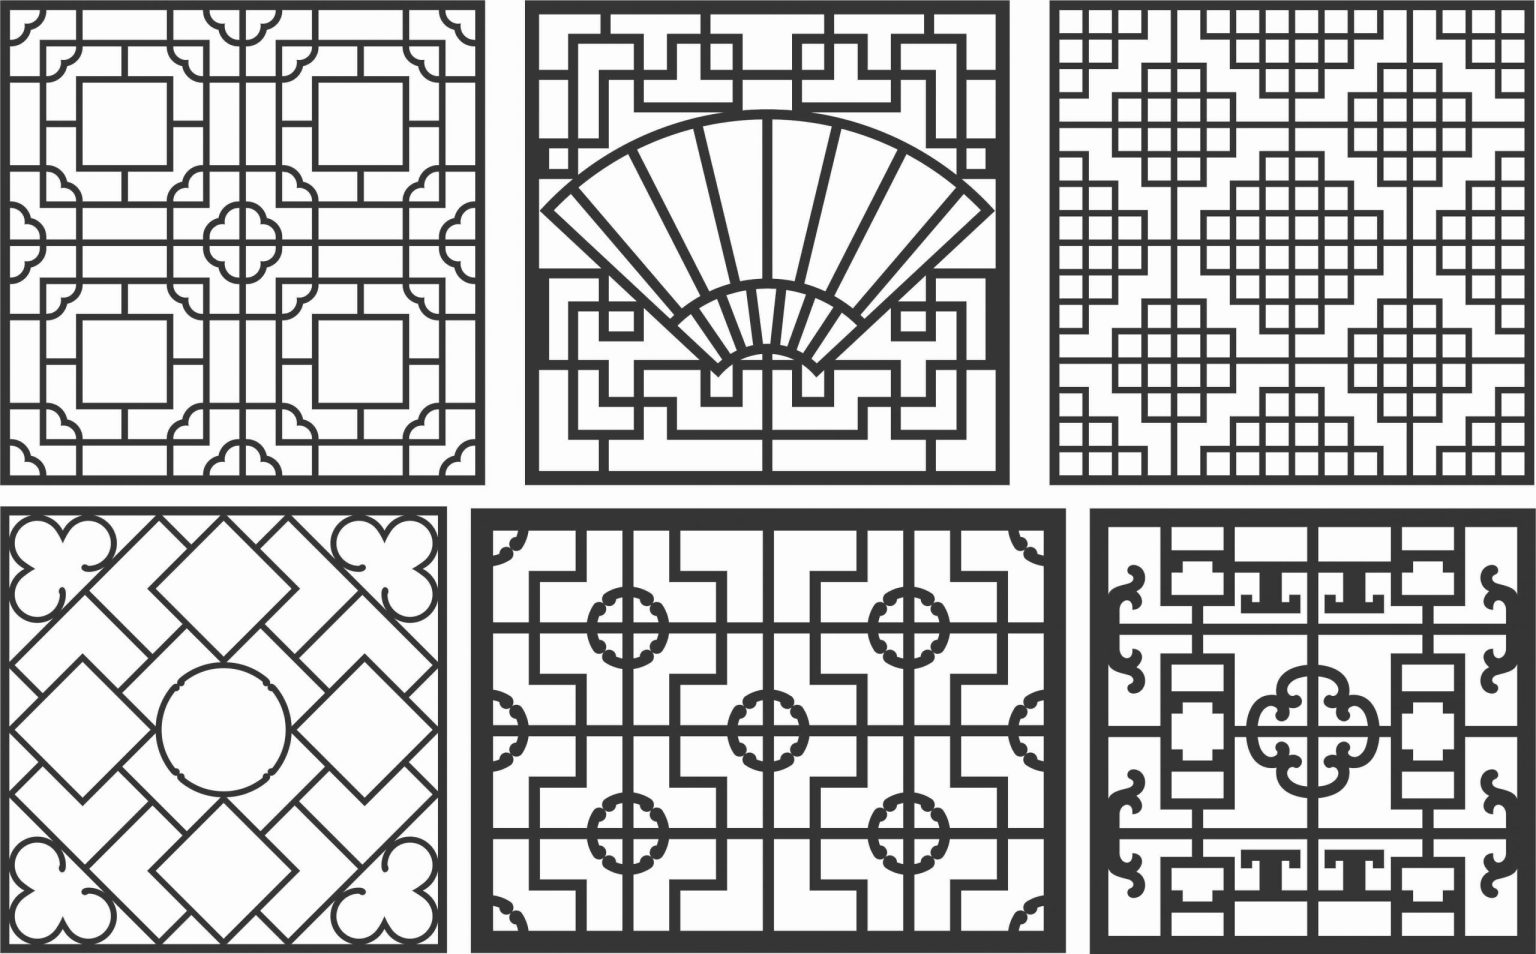 Decorative Screen Patterns For Laser Cutting 86 Free DXF File